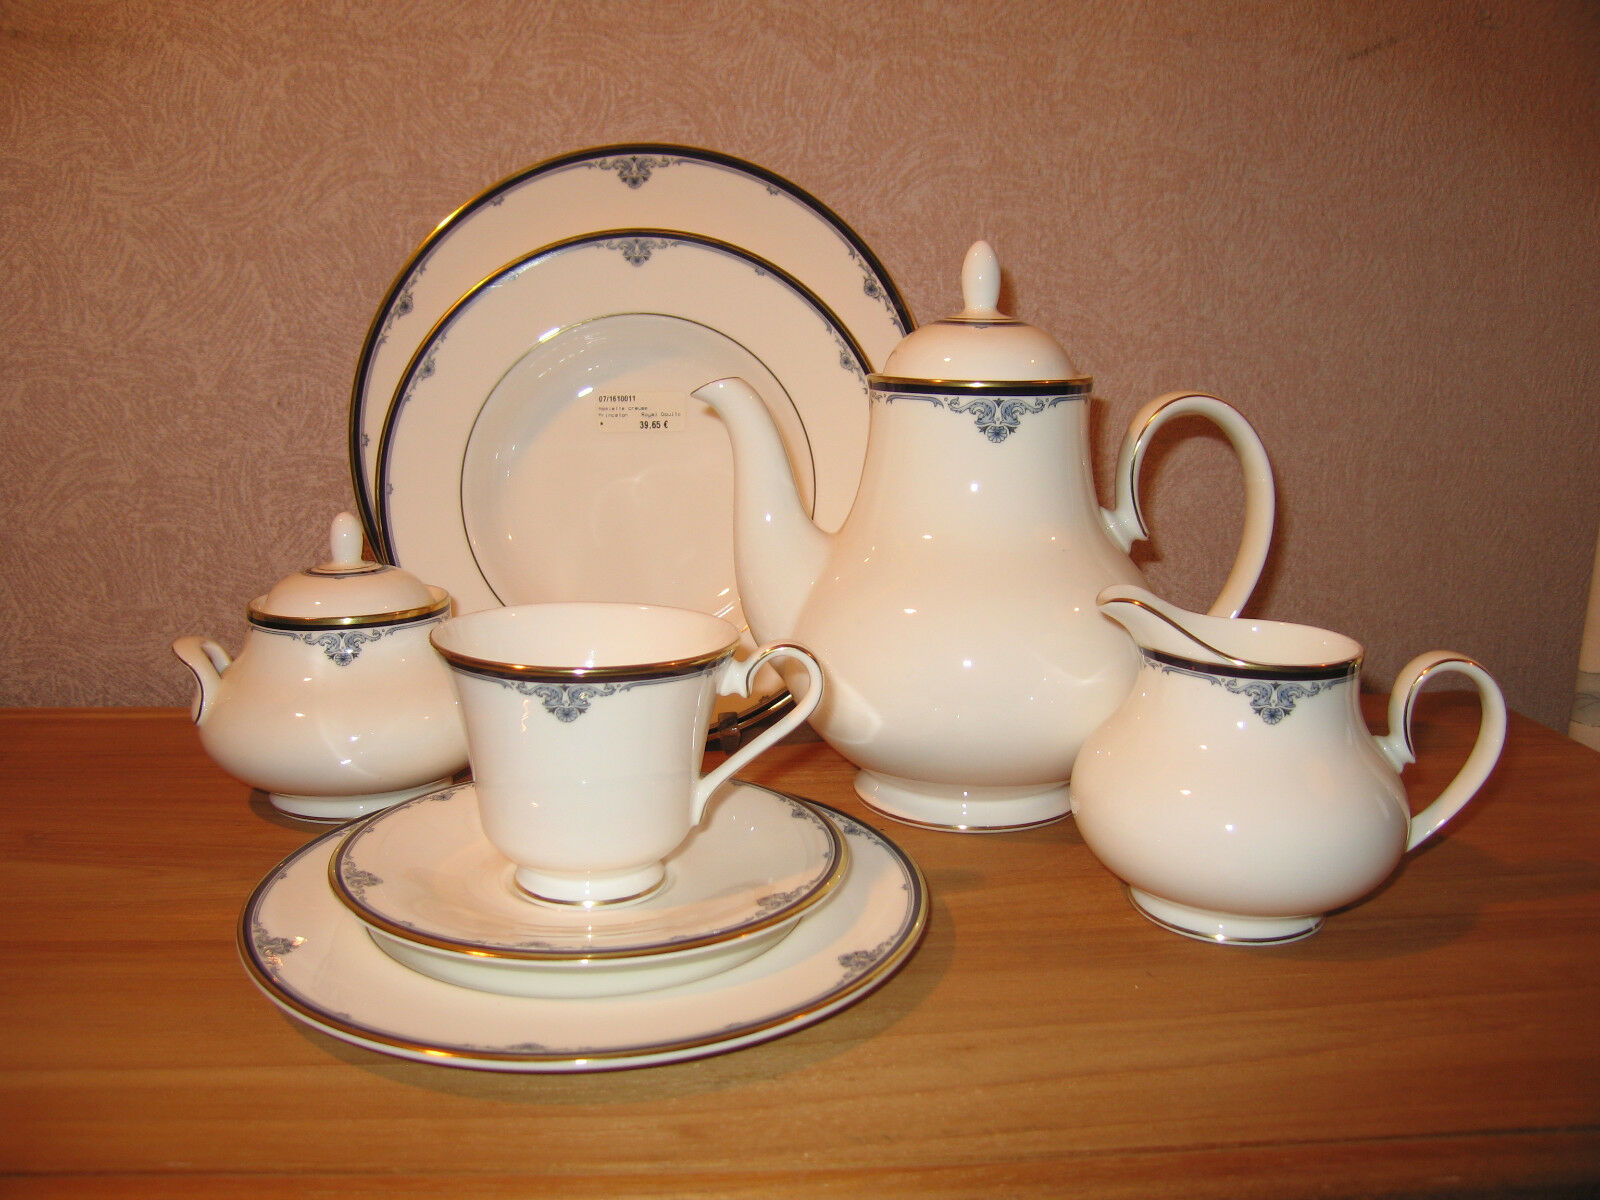 ROYAL DOULTON NEW PRINCETON Set crémier + sucrier Set milk jug + sugar bowl